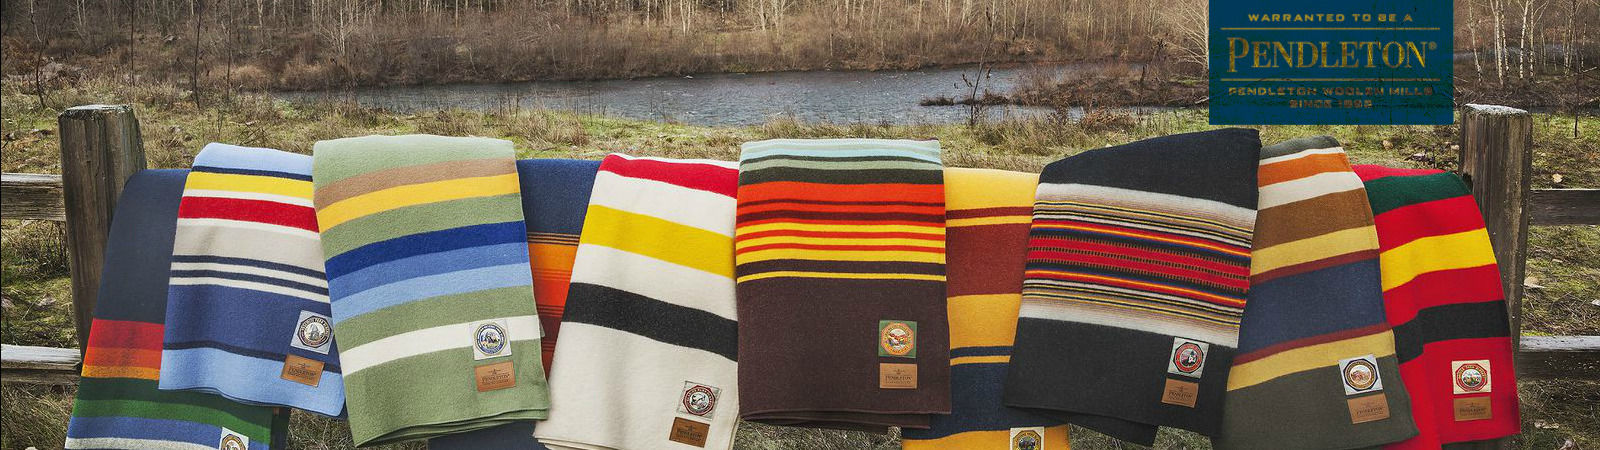 Pendleton blankets available for sale online at Sportique.